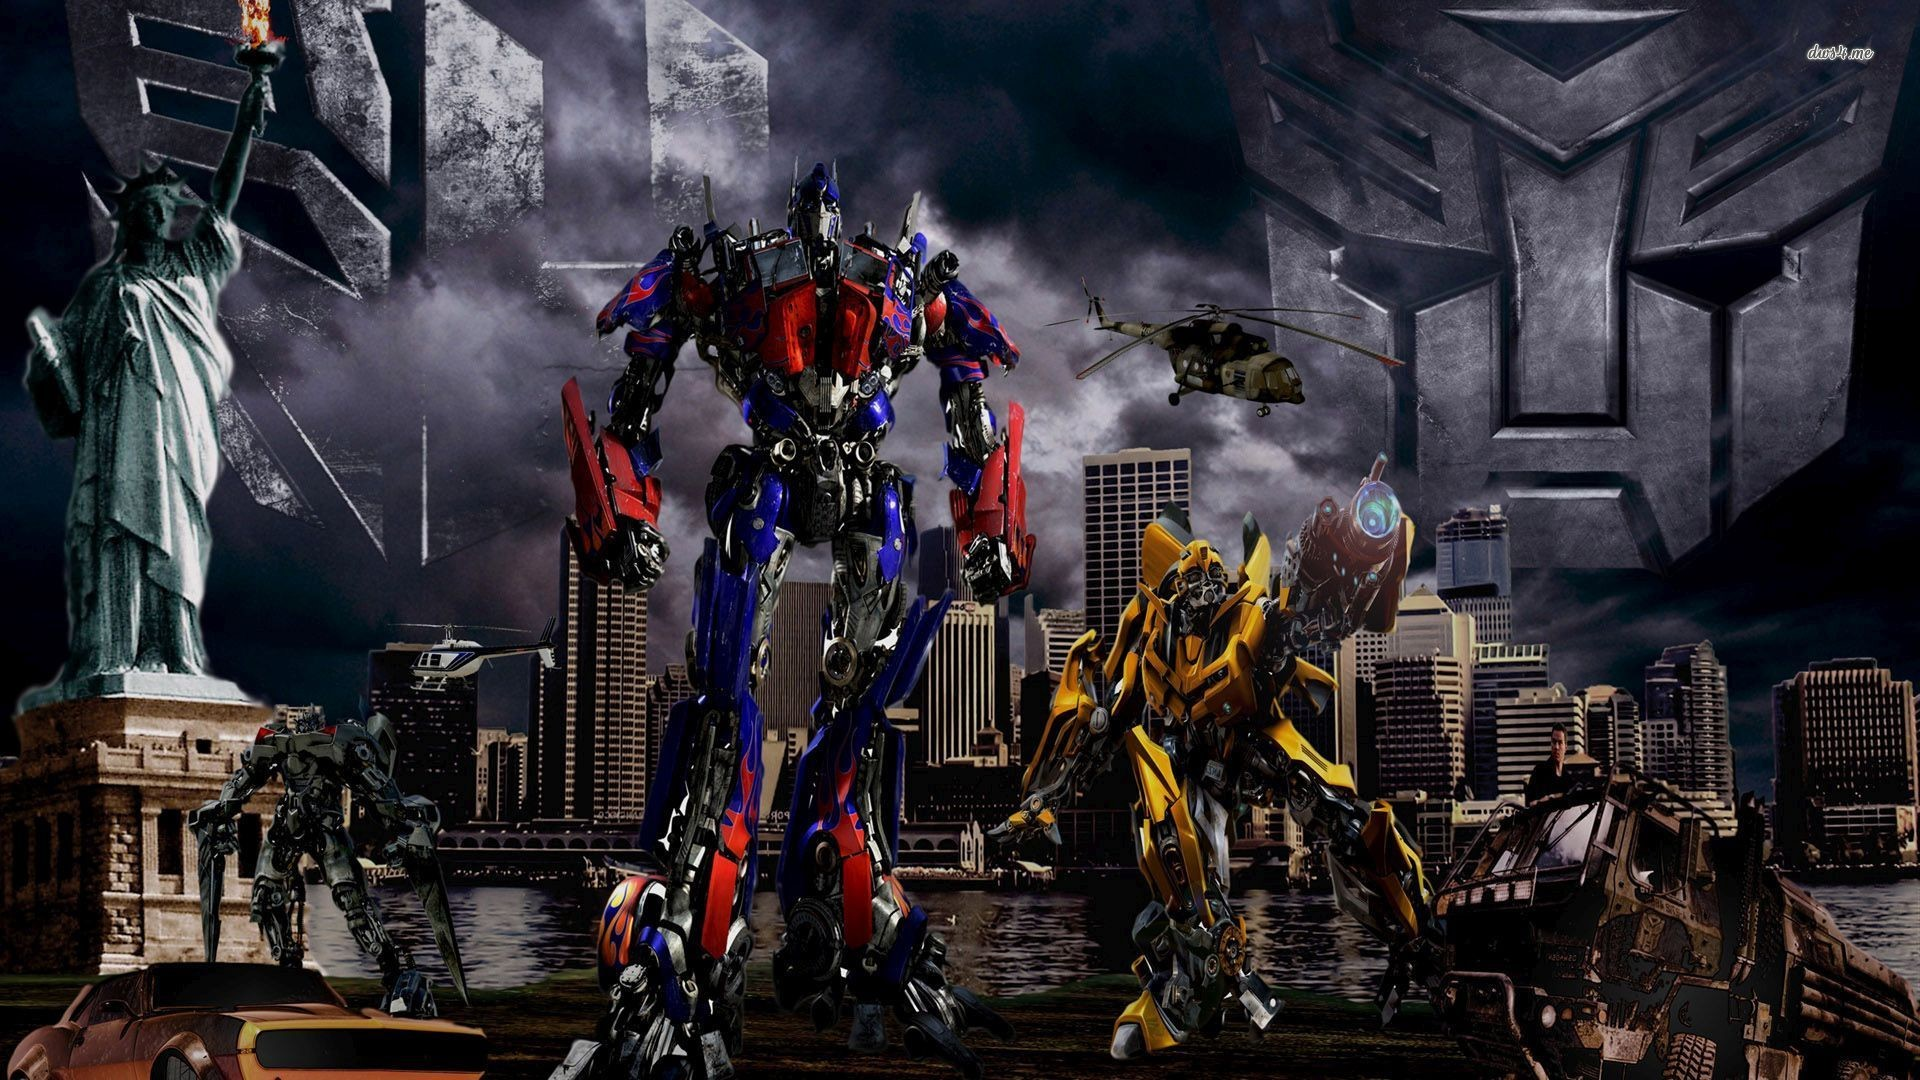 Transformers Fall Of Cybertron Hd Wallpapers 1080p Transformers Wallpapers 70 Images